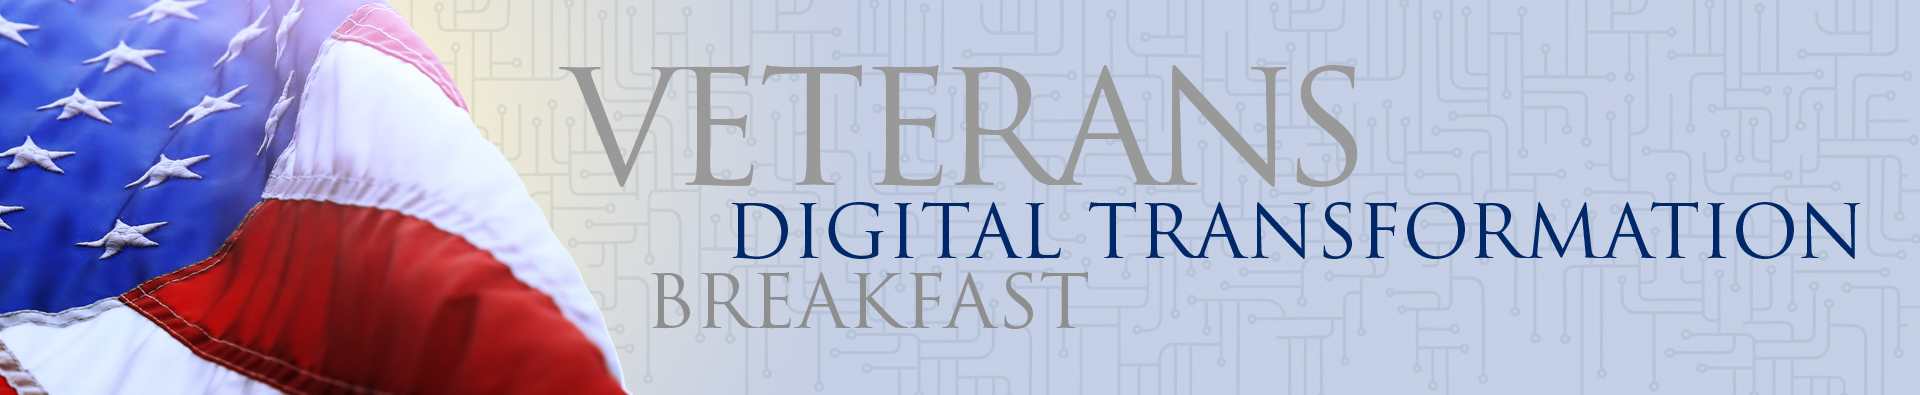 Veterans Digital Transformation Breakfast